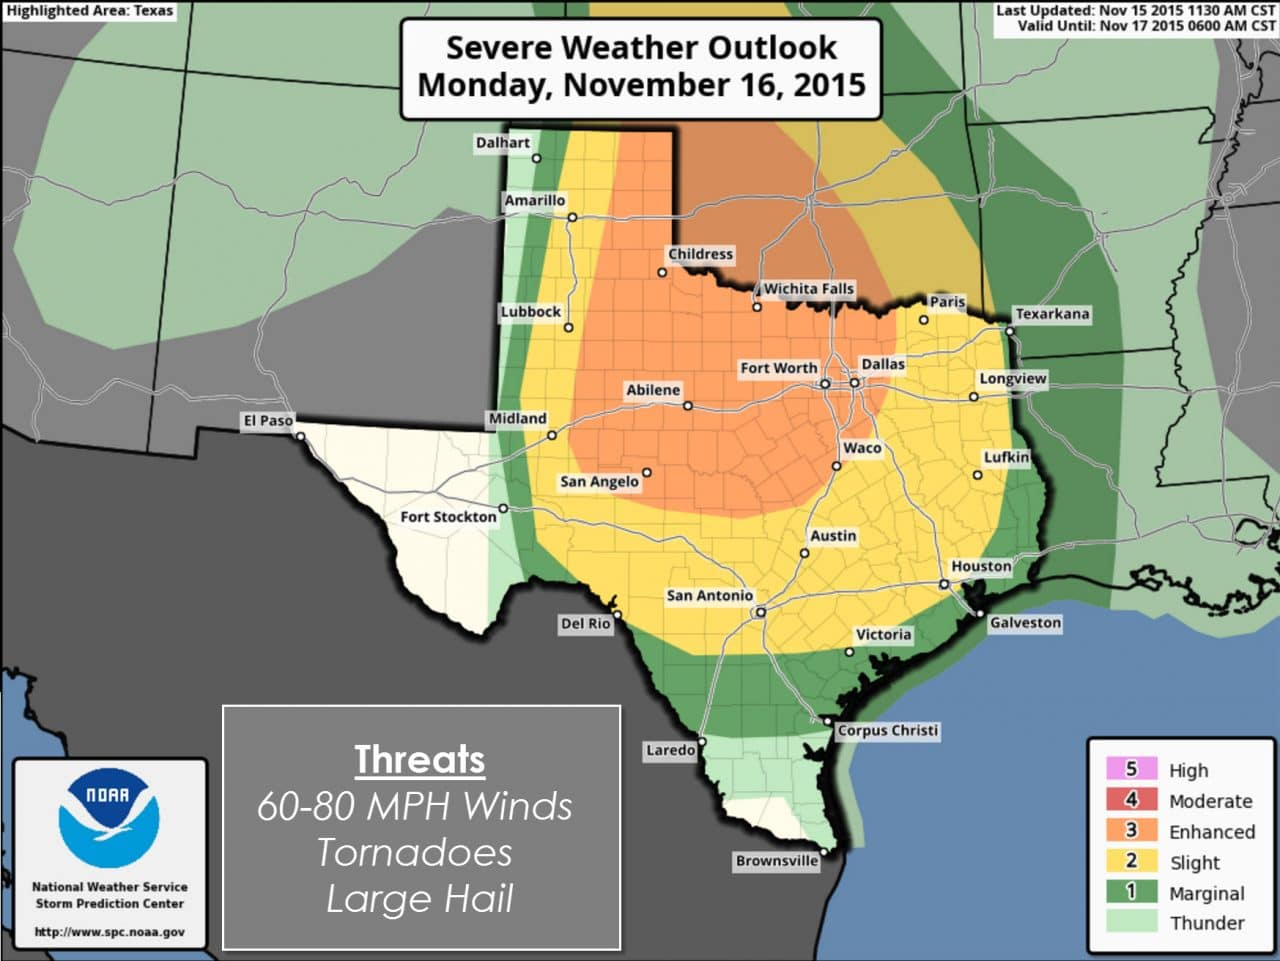 Severe Weather Outbreak Possible Monday Night & Tuesday Morning